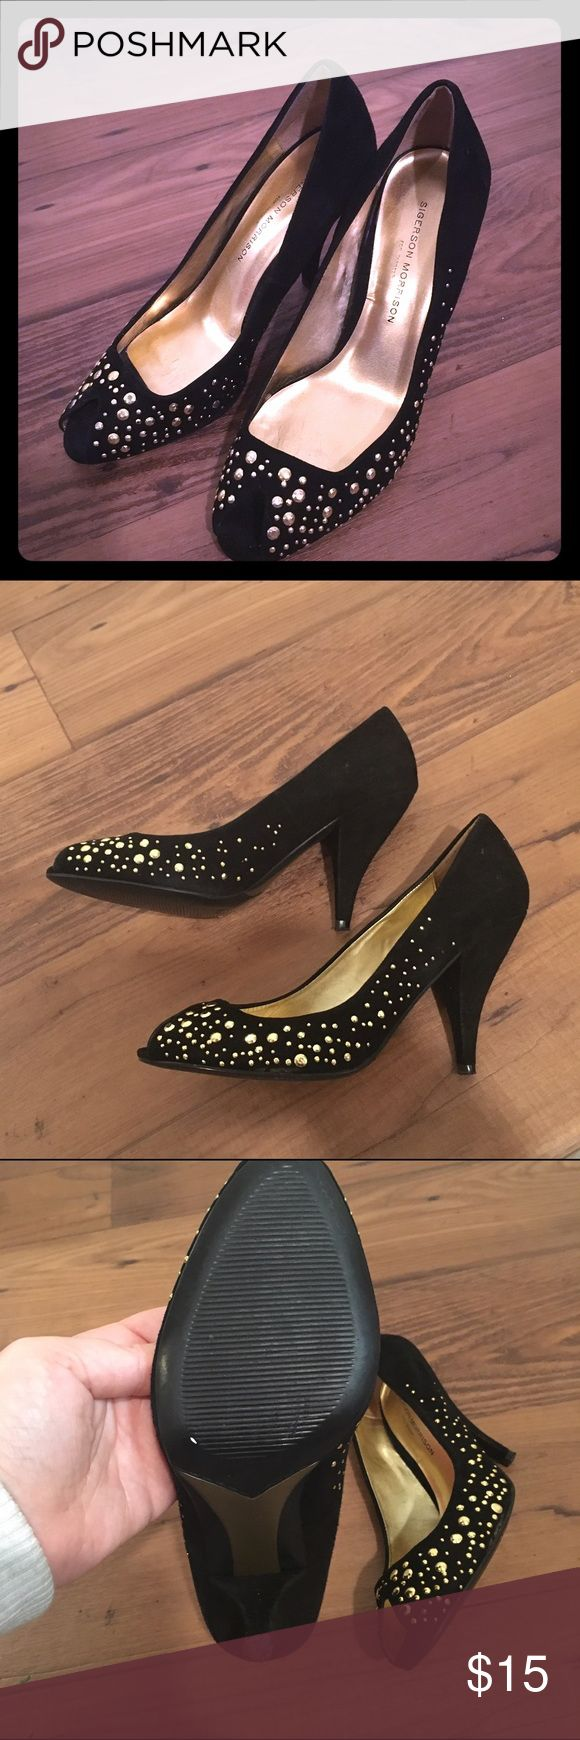 Sigerson Morrison for Target Shoes Super cute! Black and gold Sigerson Morrison pumps! Sigerson Morrison Shoes Heels